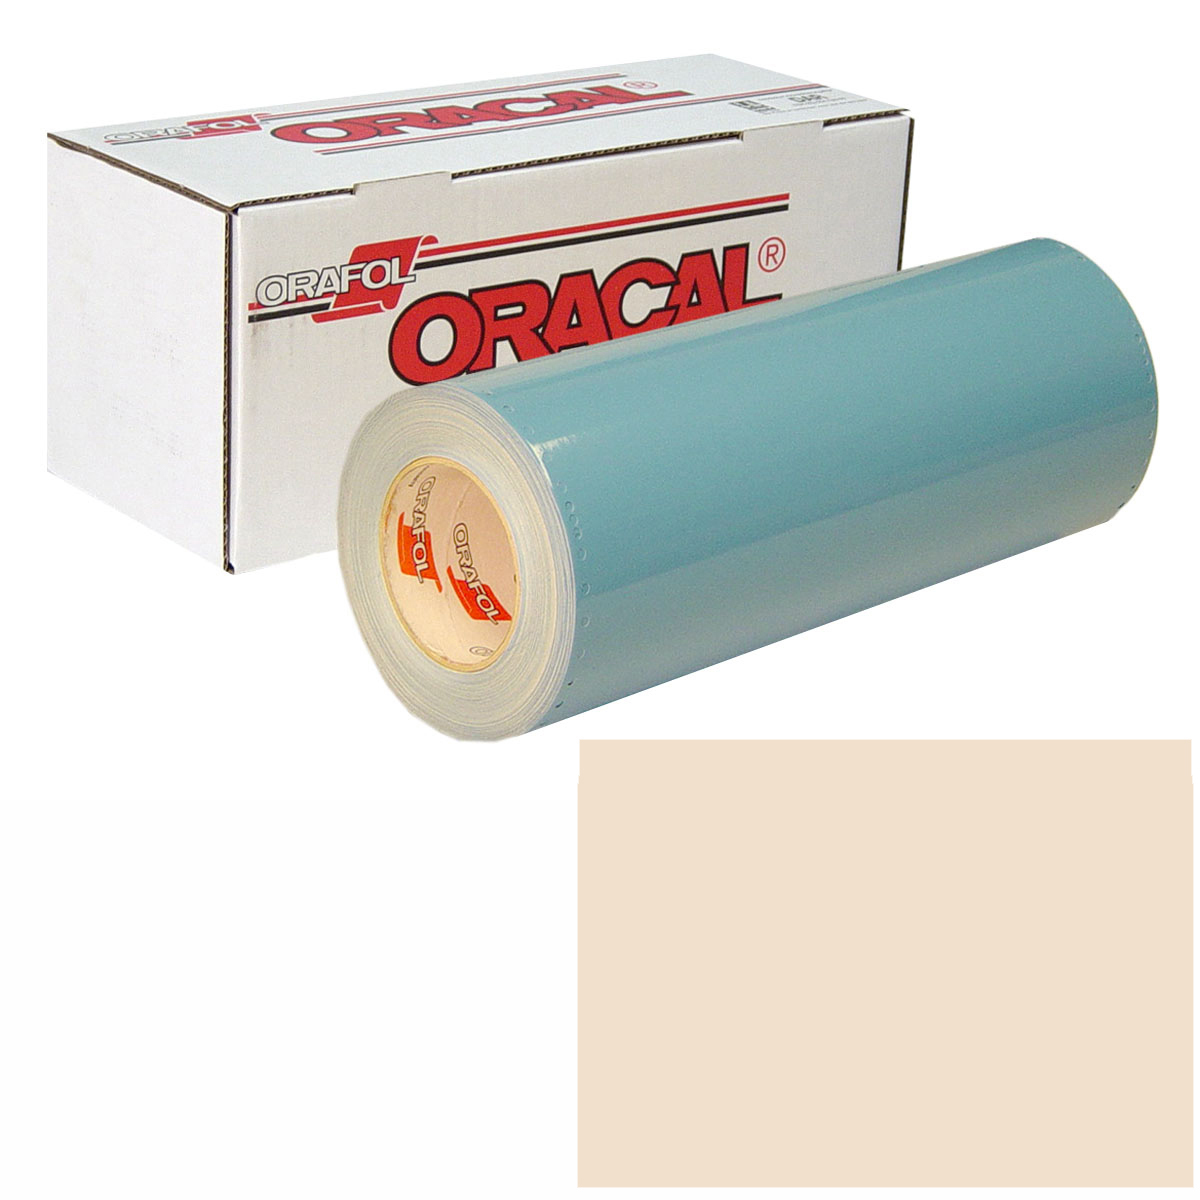 ORACAL 751 15In X 50Yd 018 Light Ivory